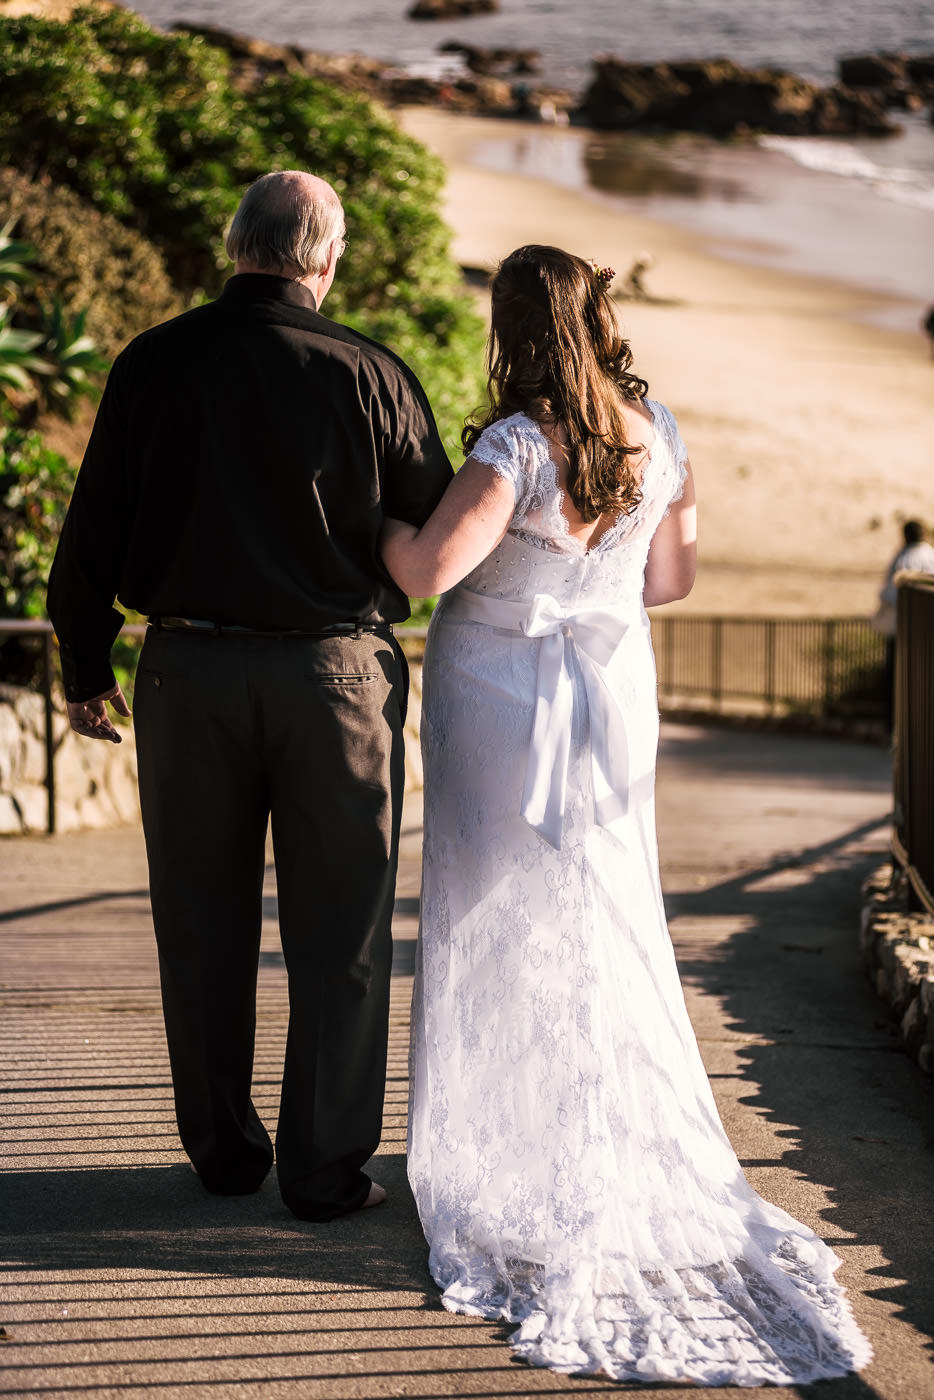 Father of the bride walks his daughter down to the ceremony at Laguna Beach.